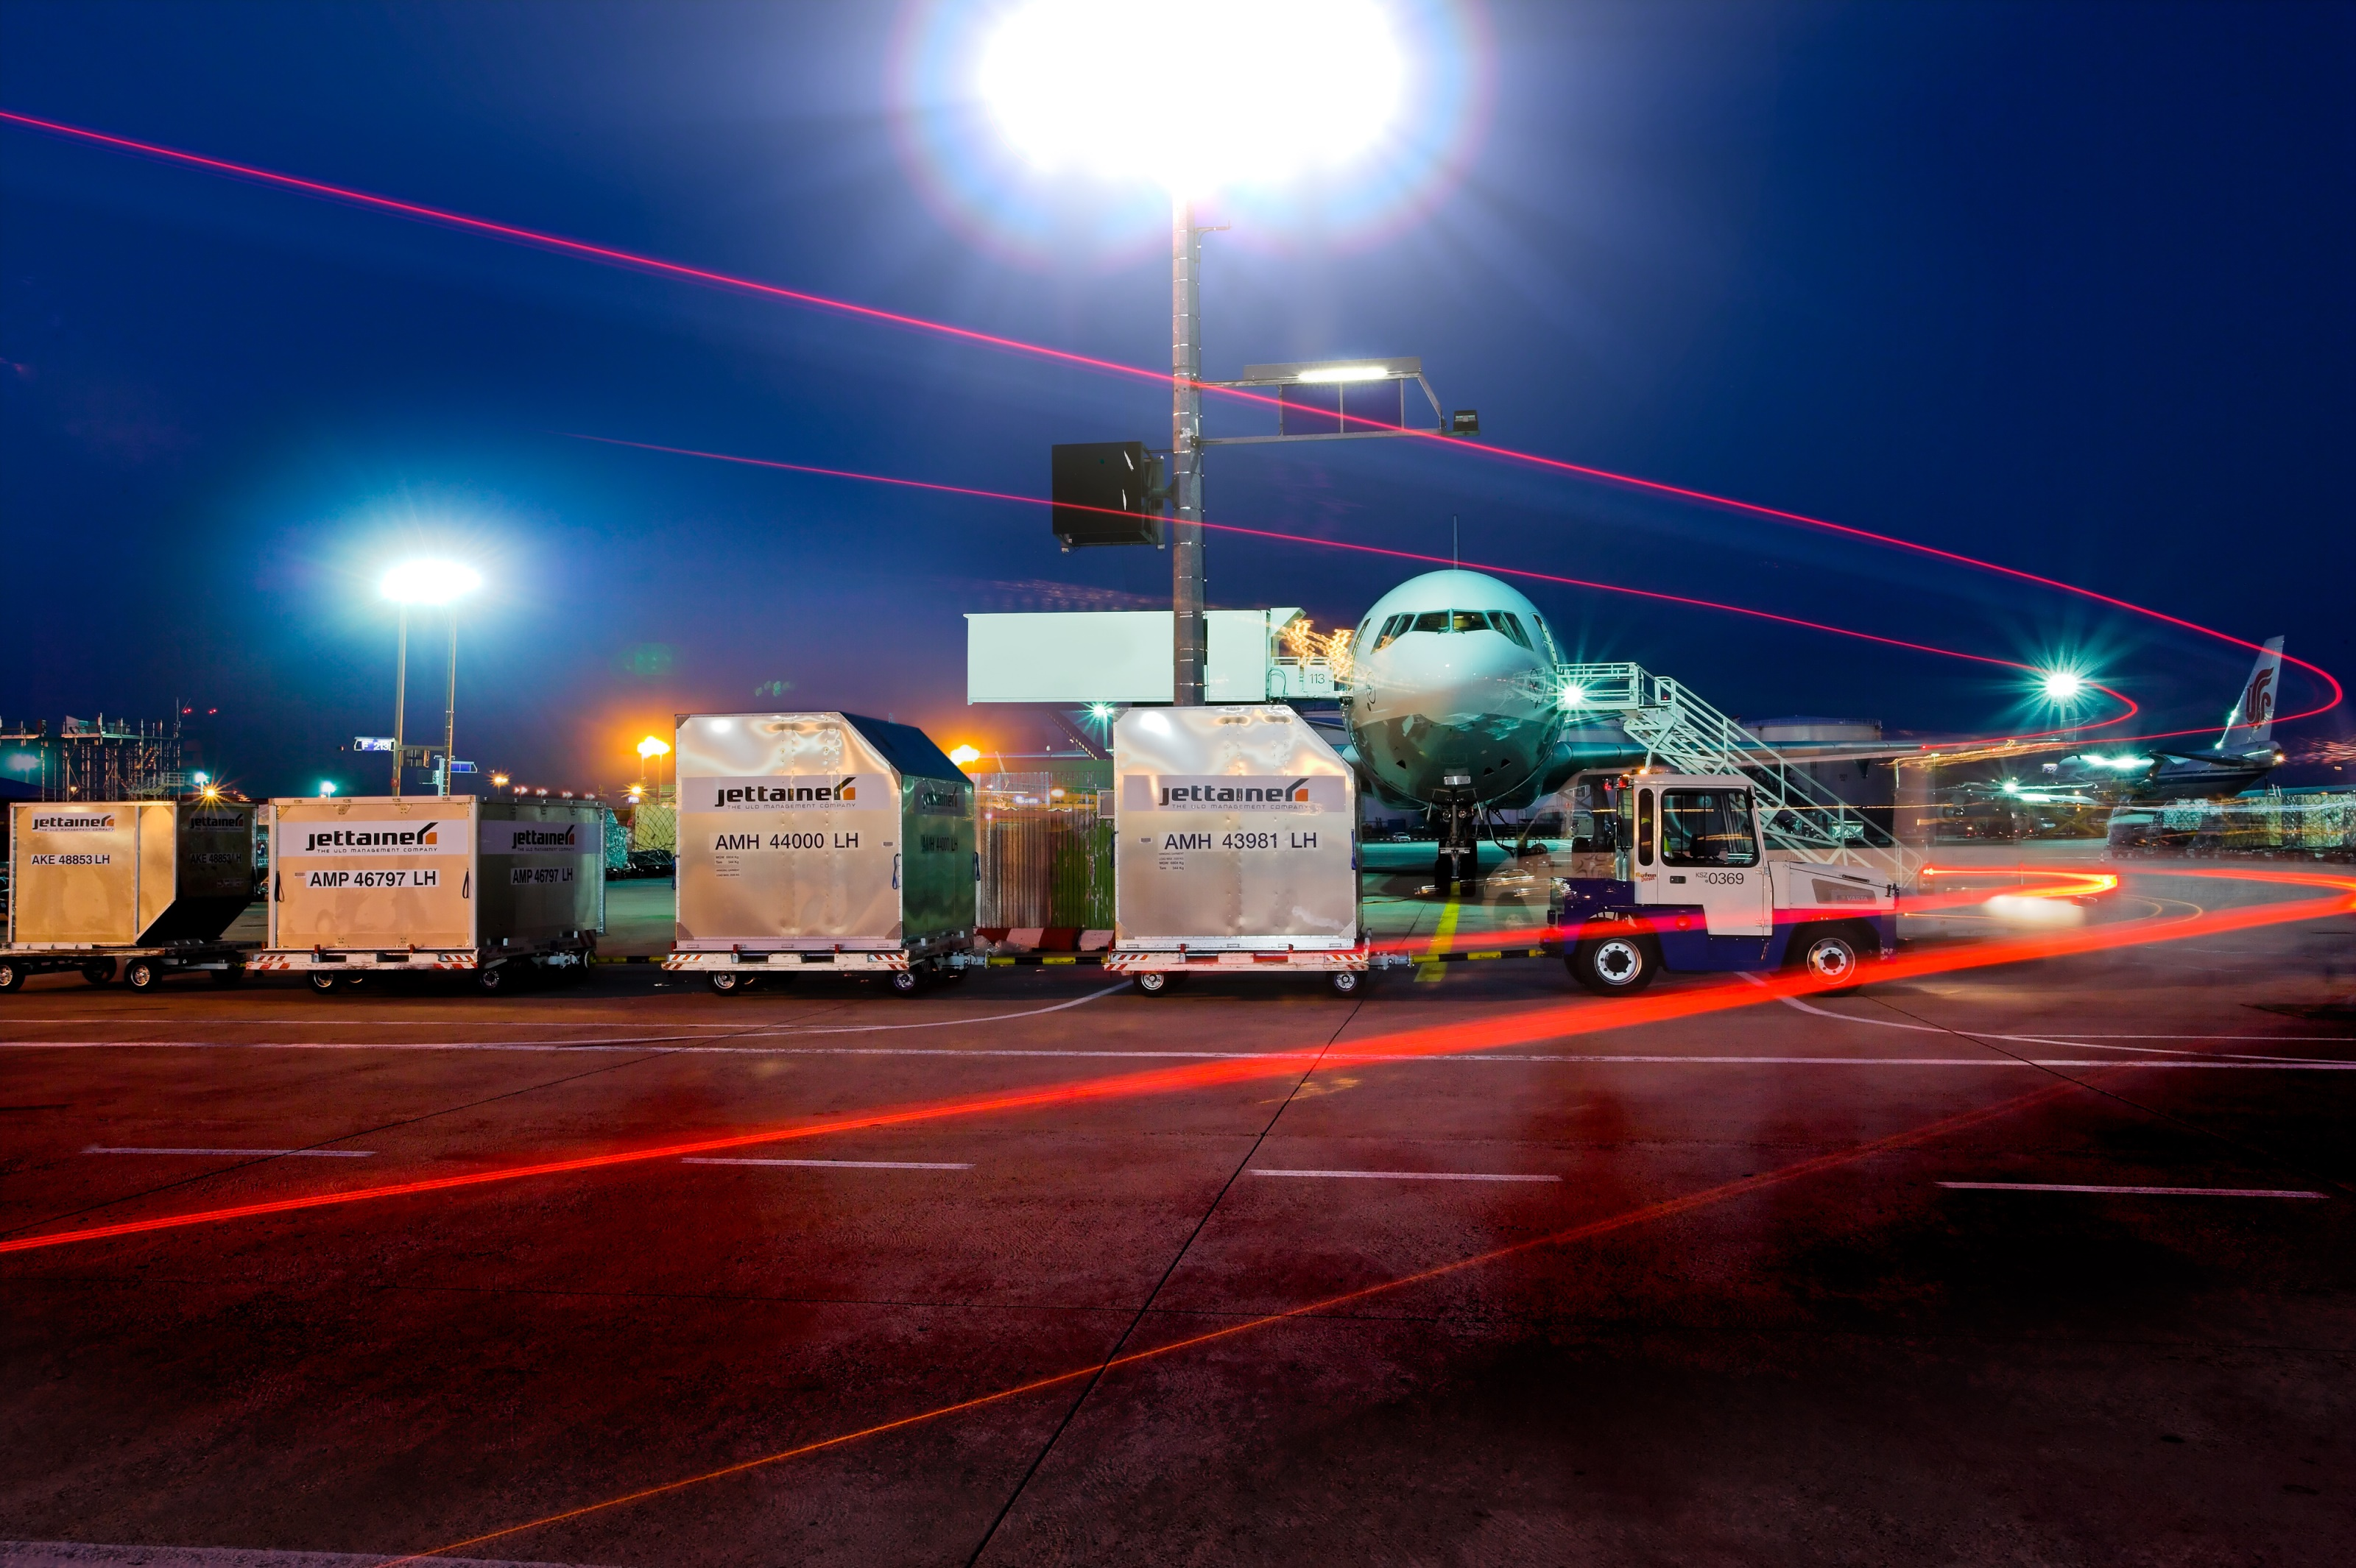 Jettainer Completes Partner Certification Programme Air Cargo News